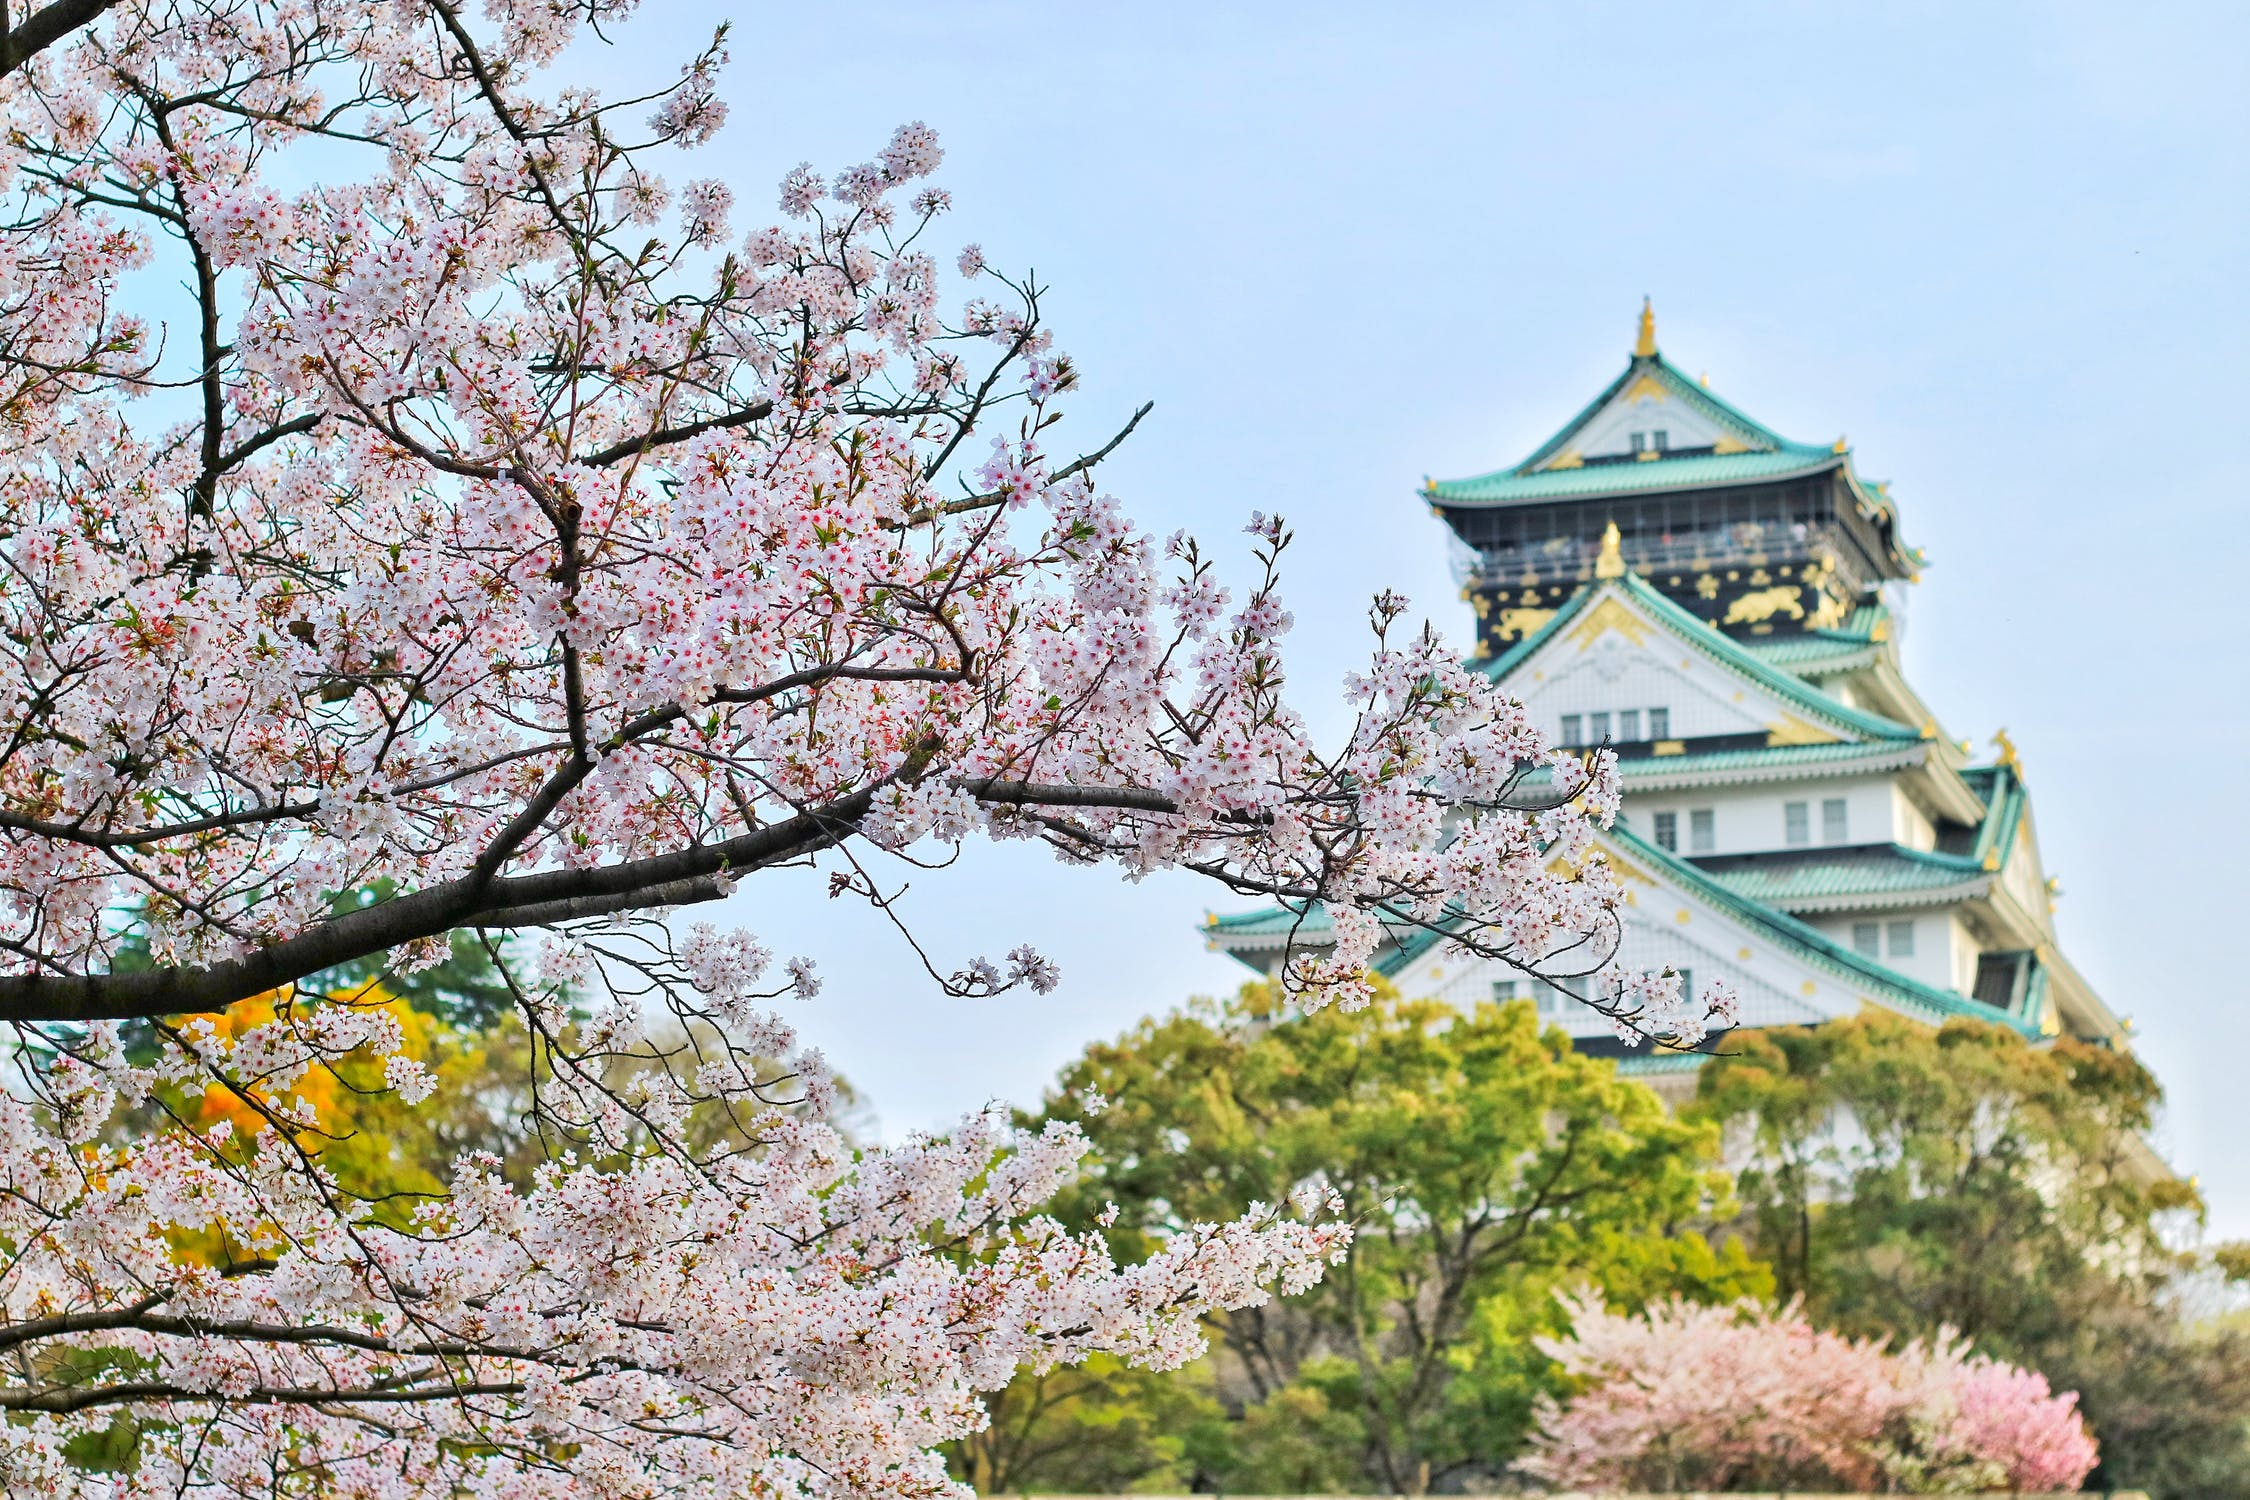 What Are The Best Cities For Japan Package Tours?